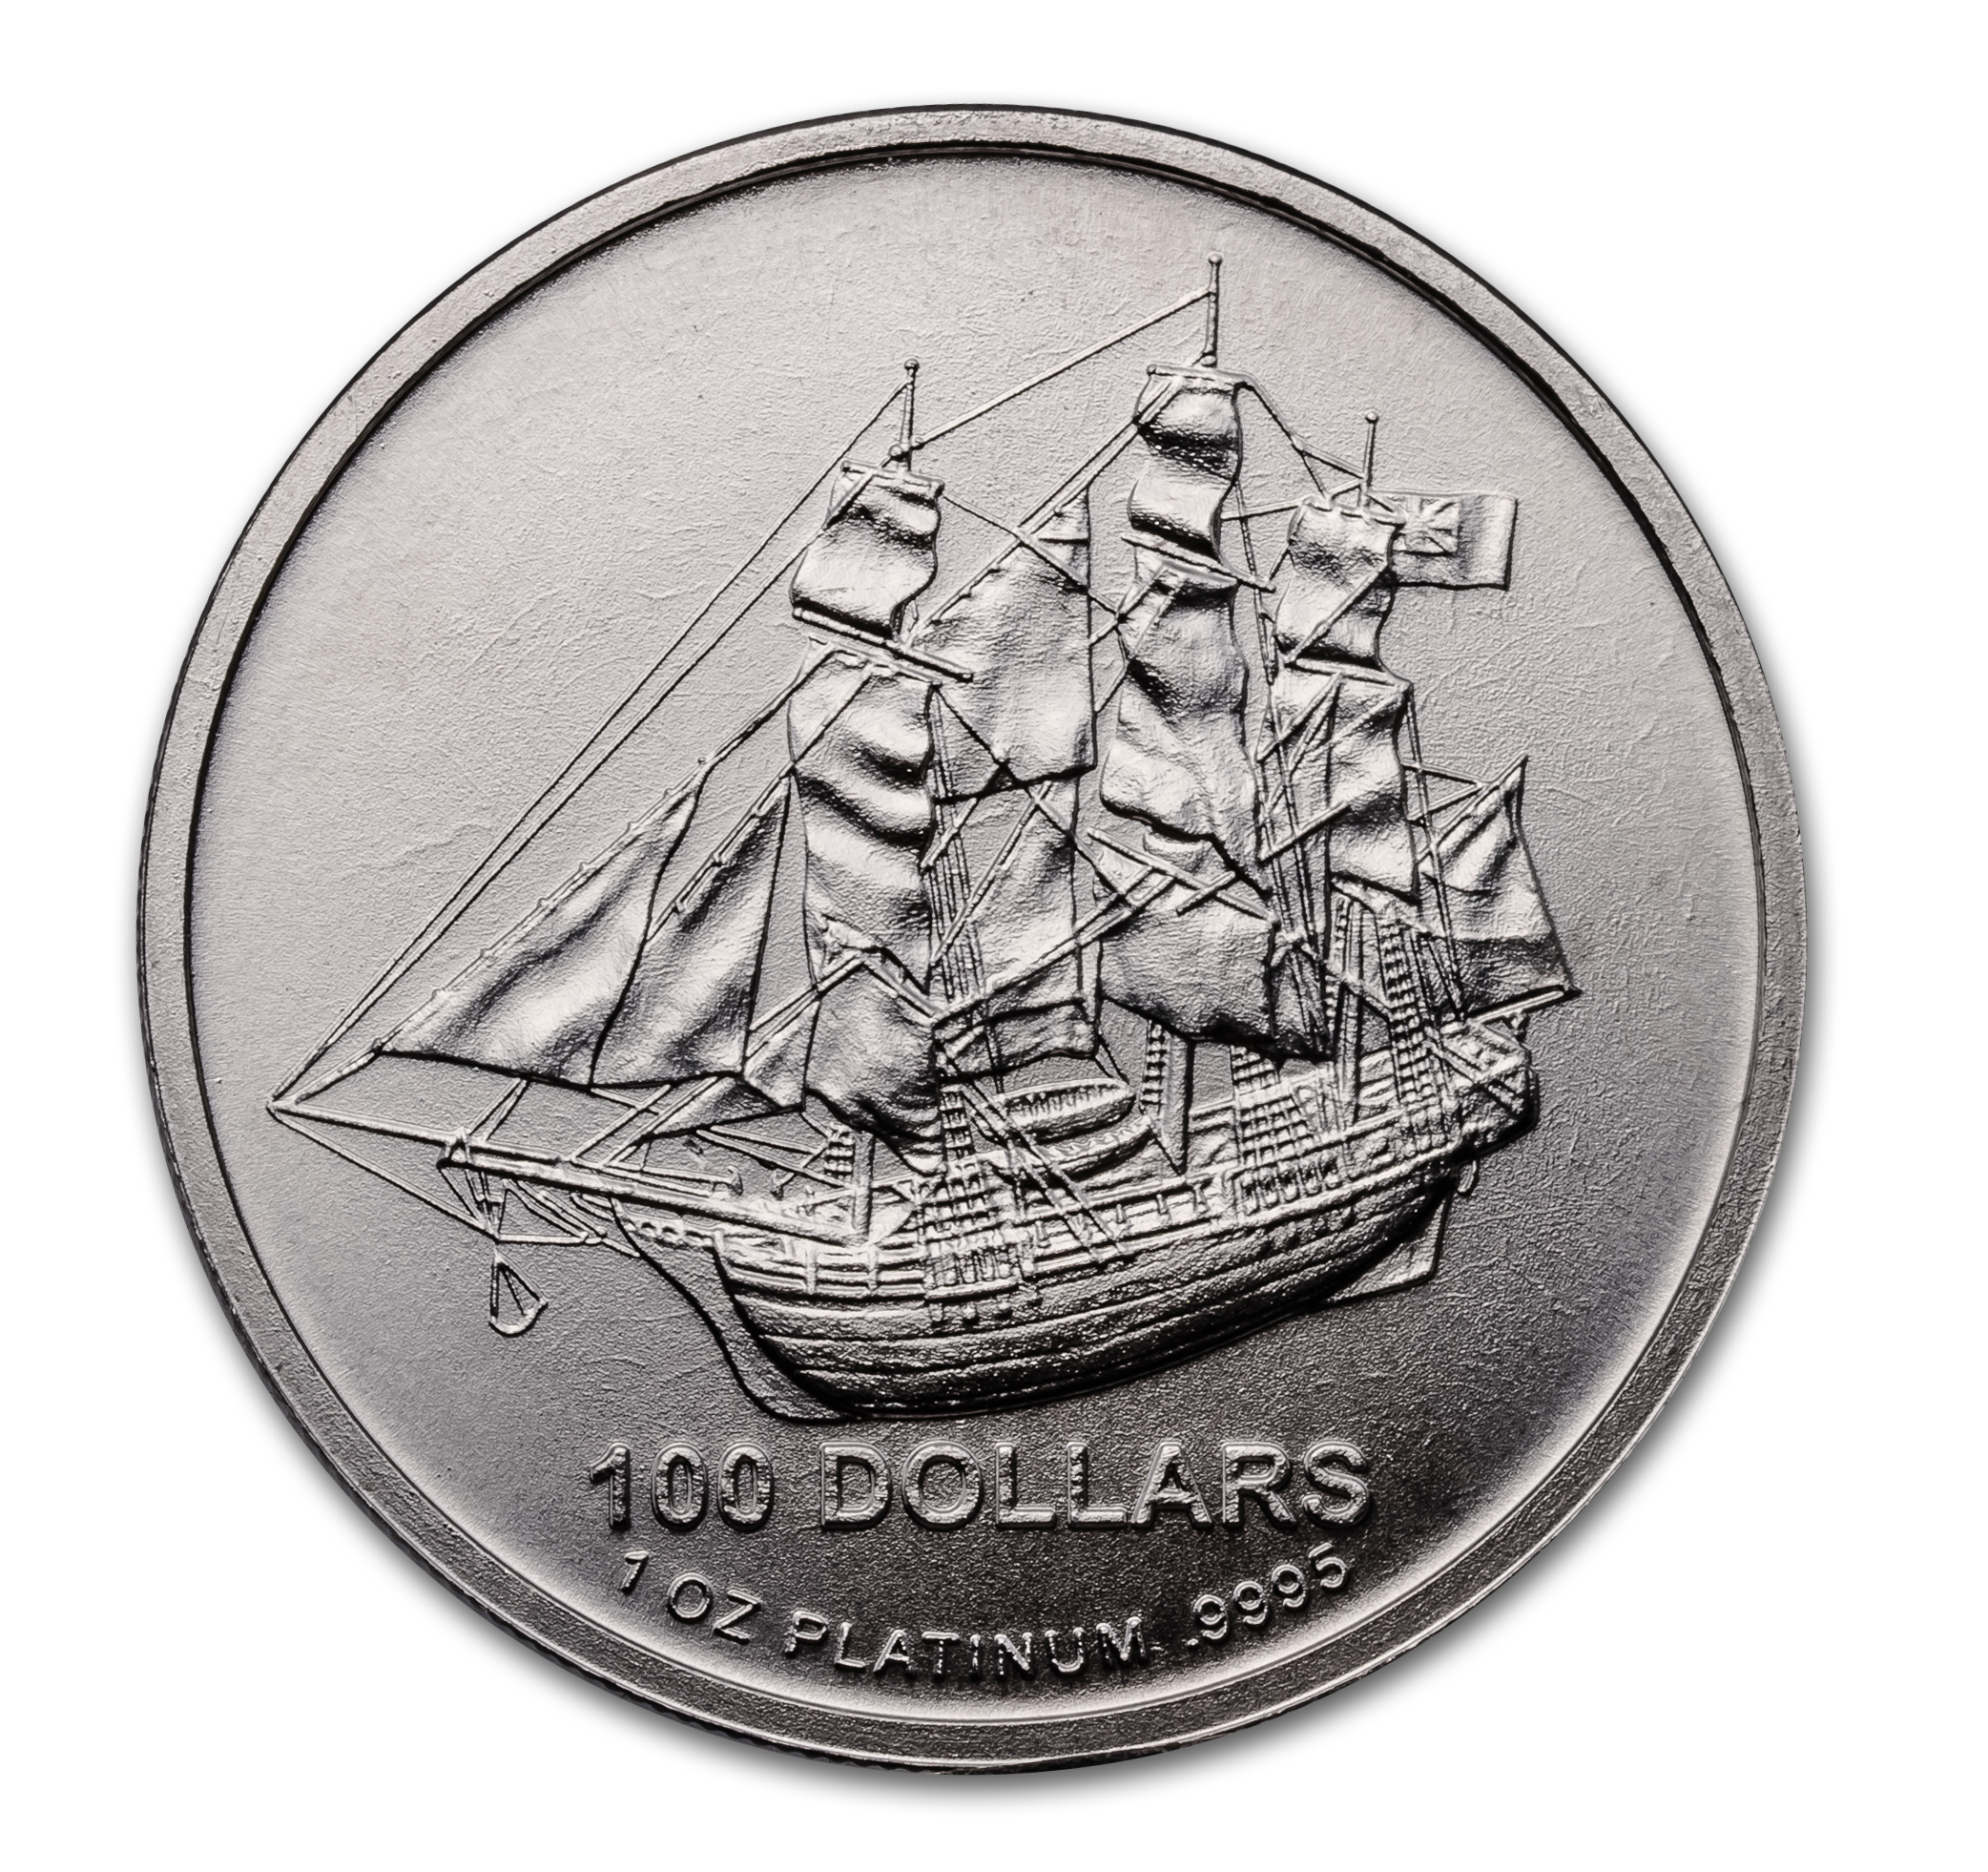 2009 Cook Islands 1 oz Platinum Bounty Coin